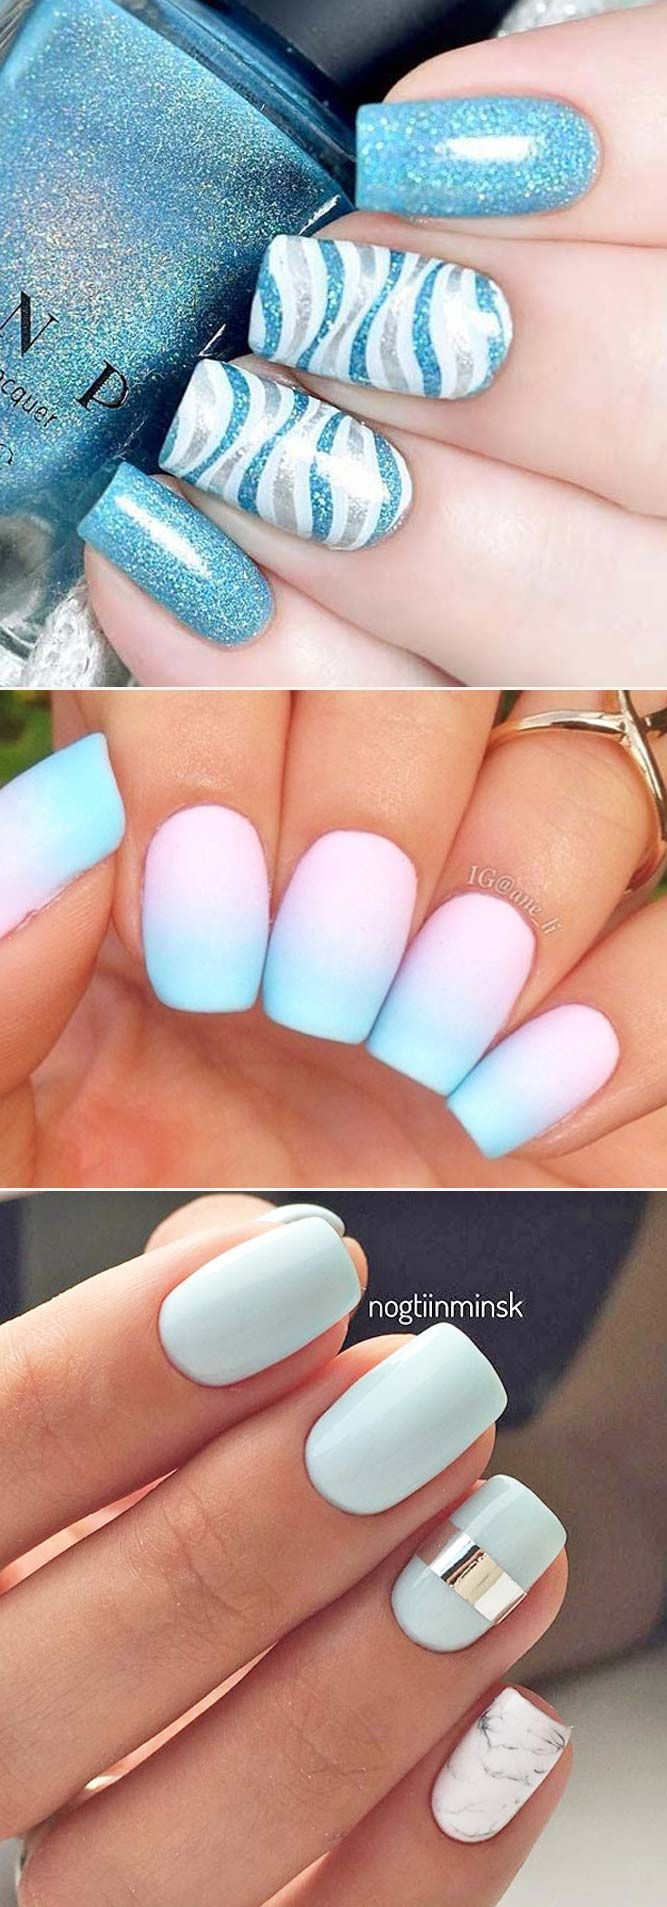 Looking for some new fun designs for summer nails? Check out our favorite nail… - http://makeupaccesory.com/looking-for-some-new-fun-designs-for-summer-nails-check-out-our-favorite-nail/